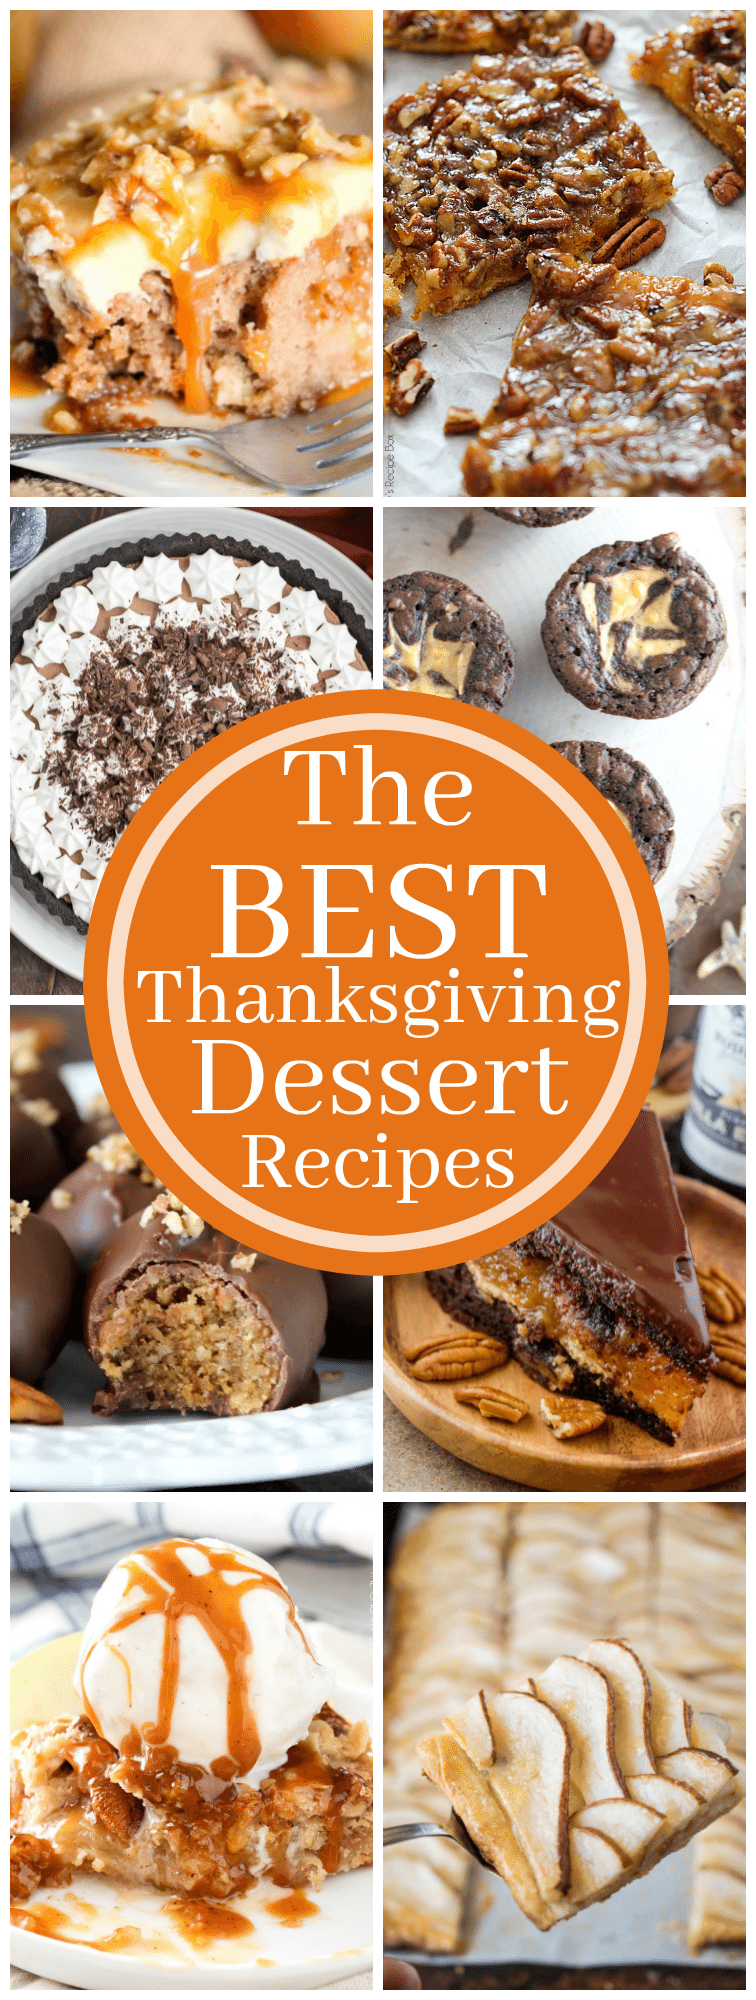 These are some of the very Best Thanksgiving Dessert Recipes! Pick a few to put on your Thanksgiving menu this year! #thanksgiving #dessert #thanksgivingmenu #dessertrecipes